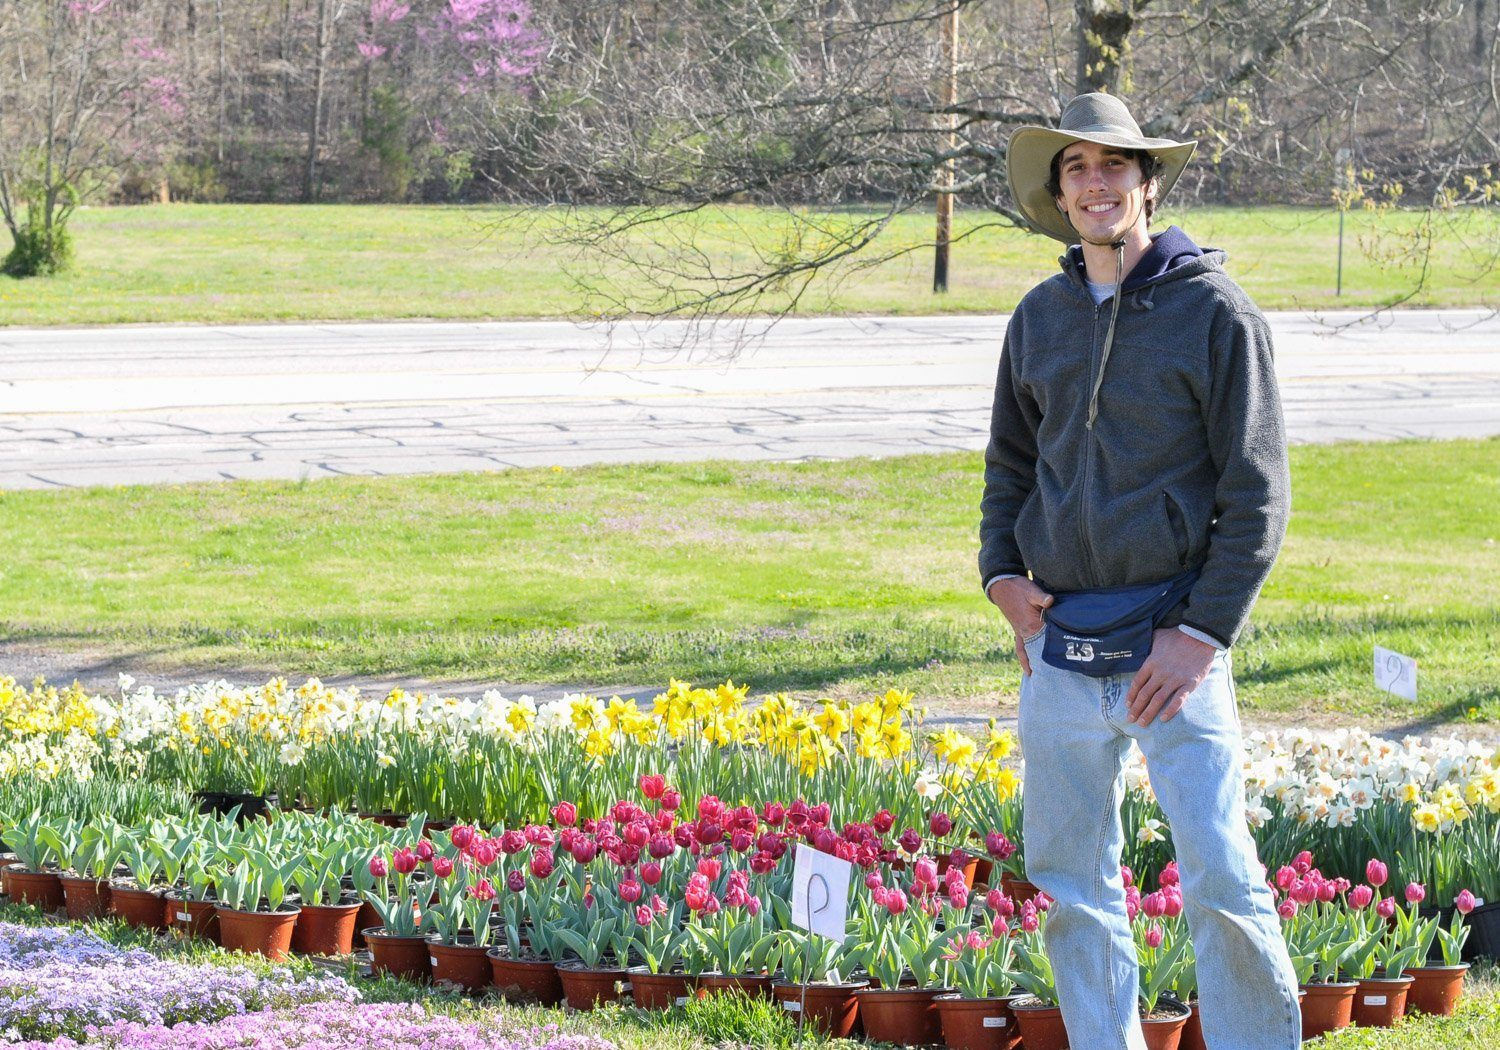 Young nursery owner standing in front of pots of red tulips and yellow daffodils